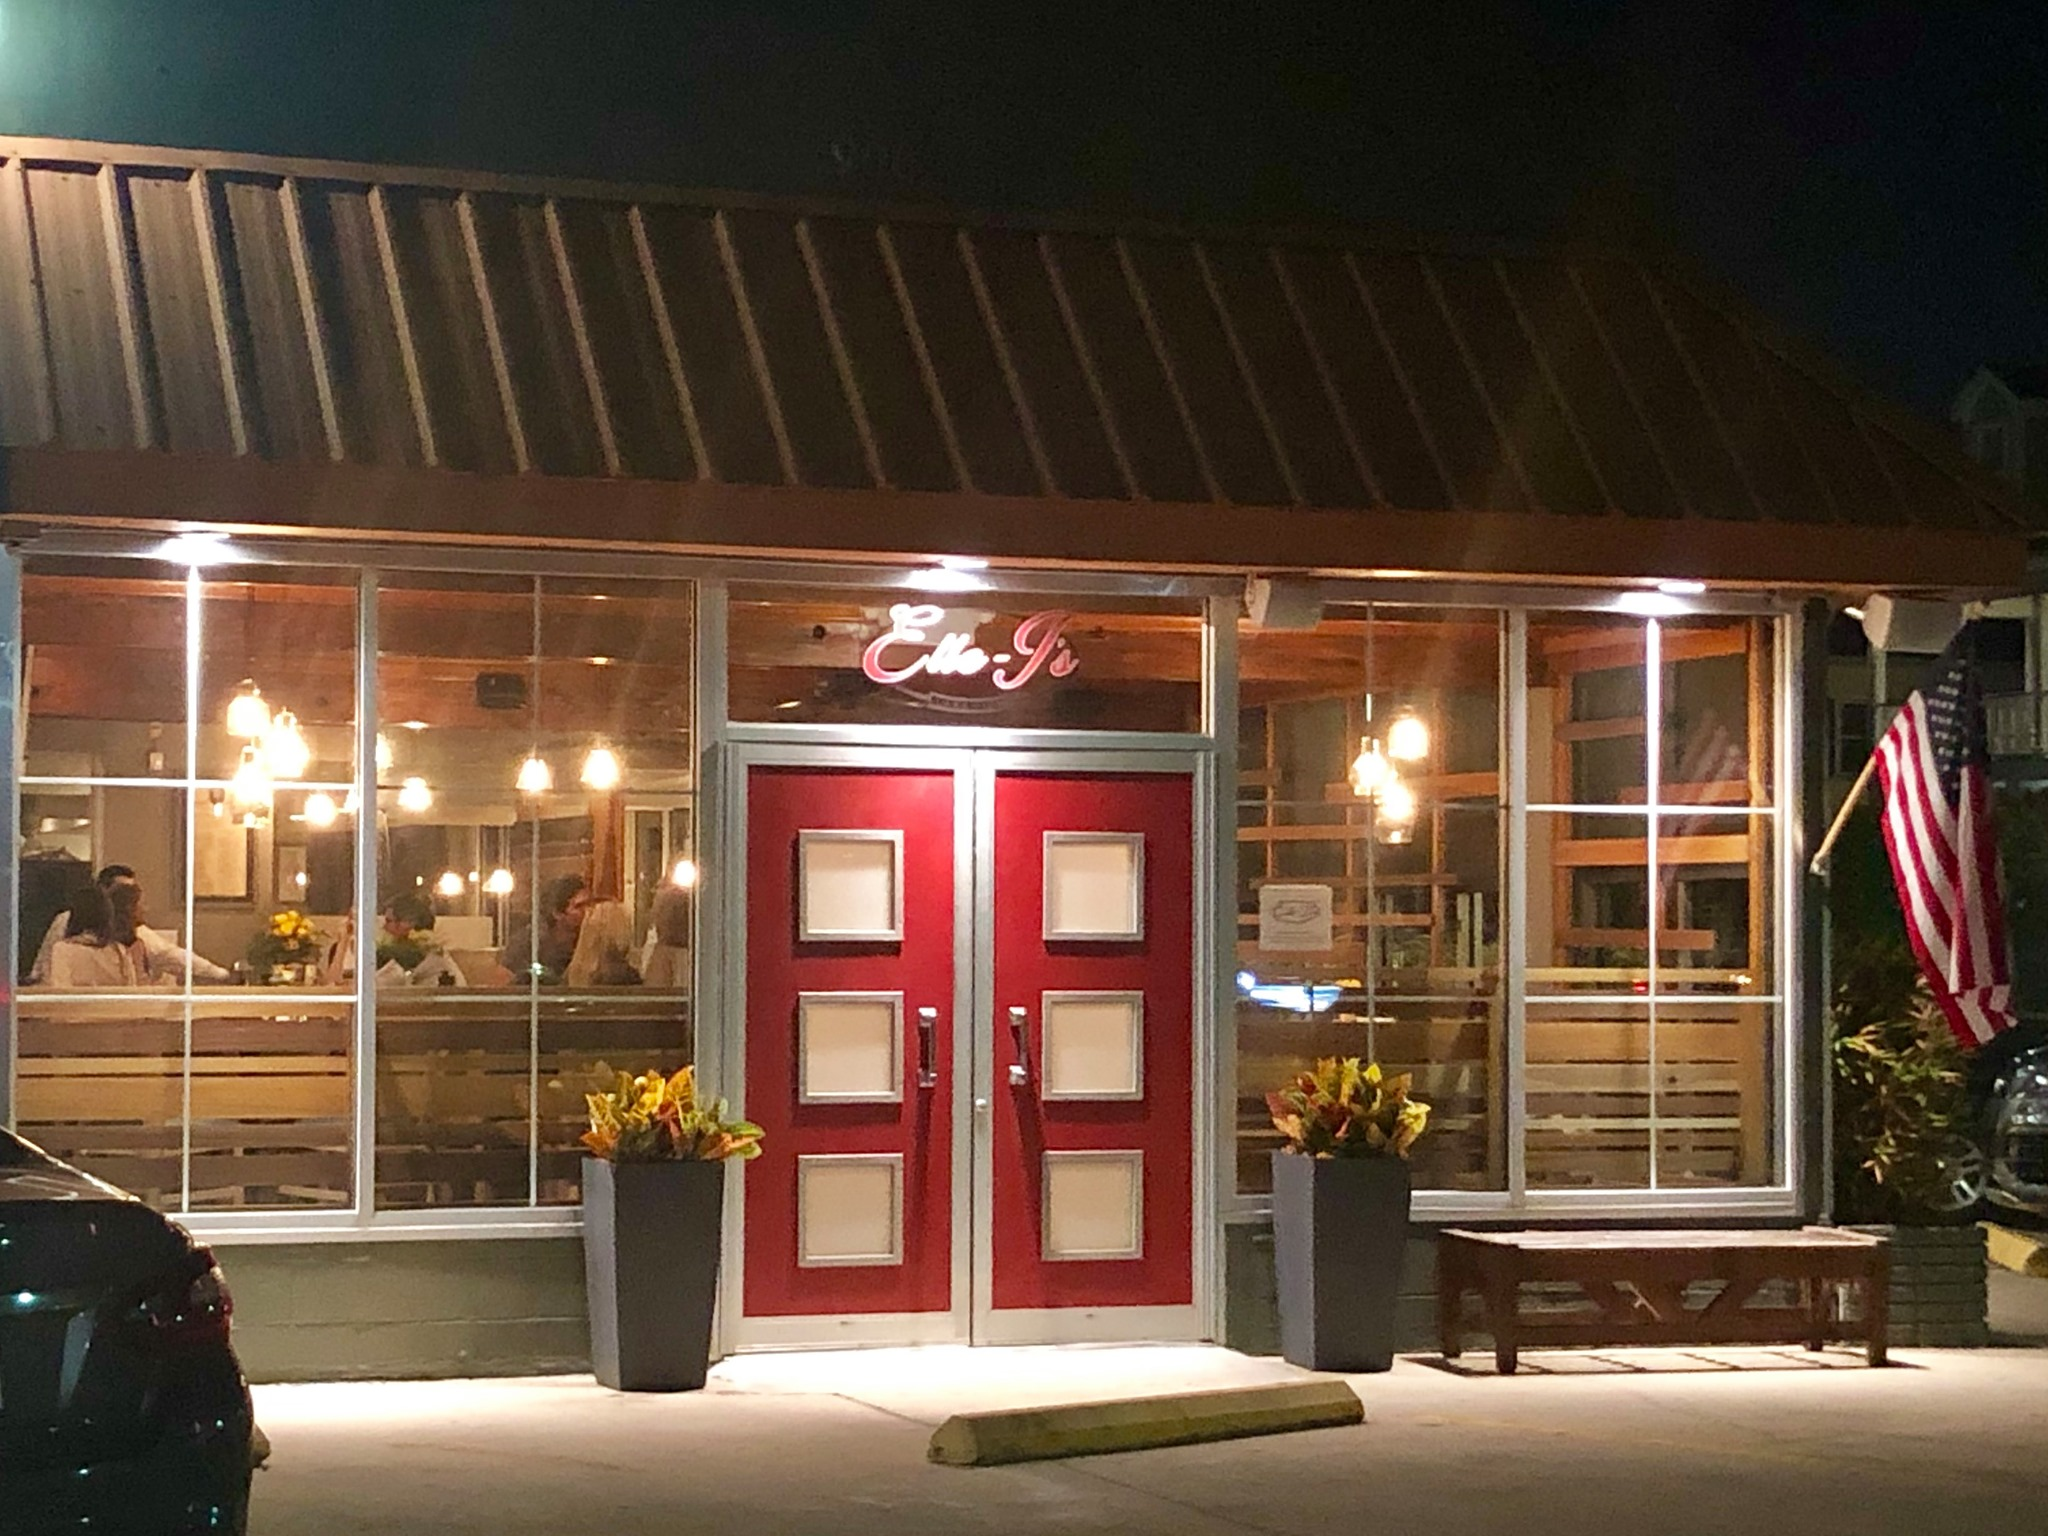 The exterior of a restaurant with glass window walls, a slate roof, and red doors